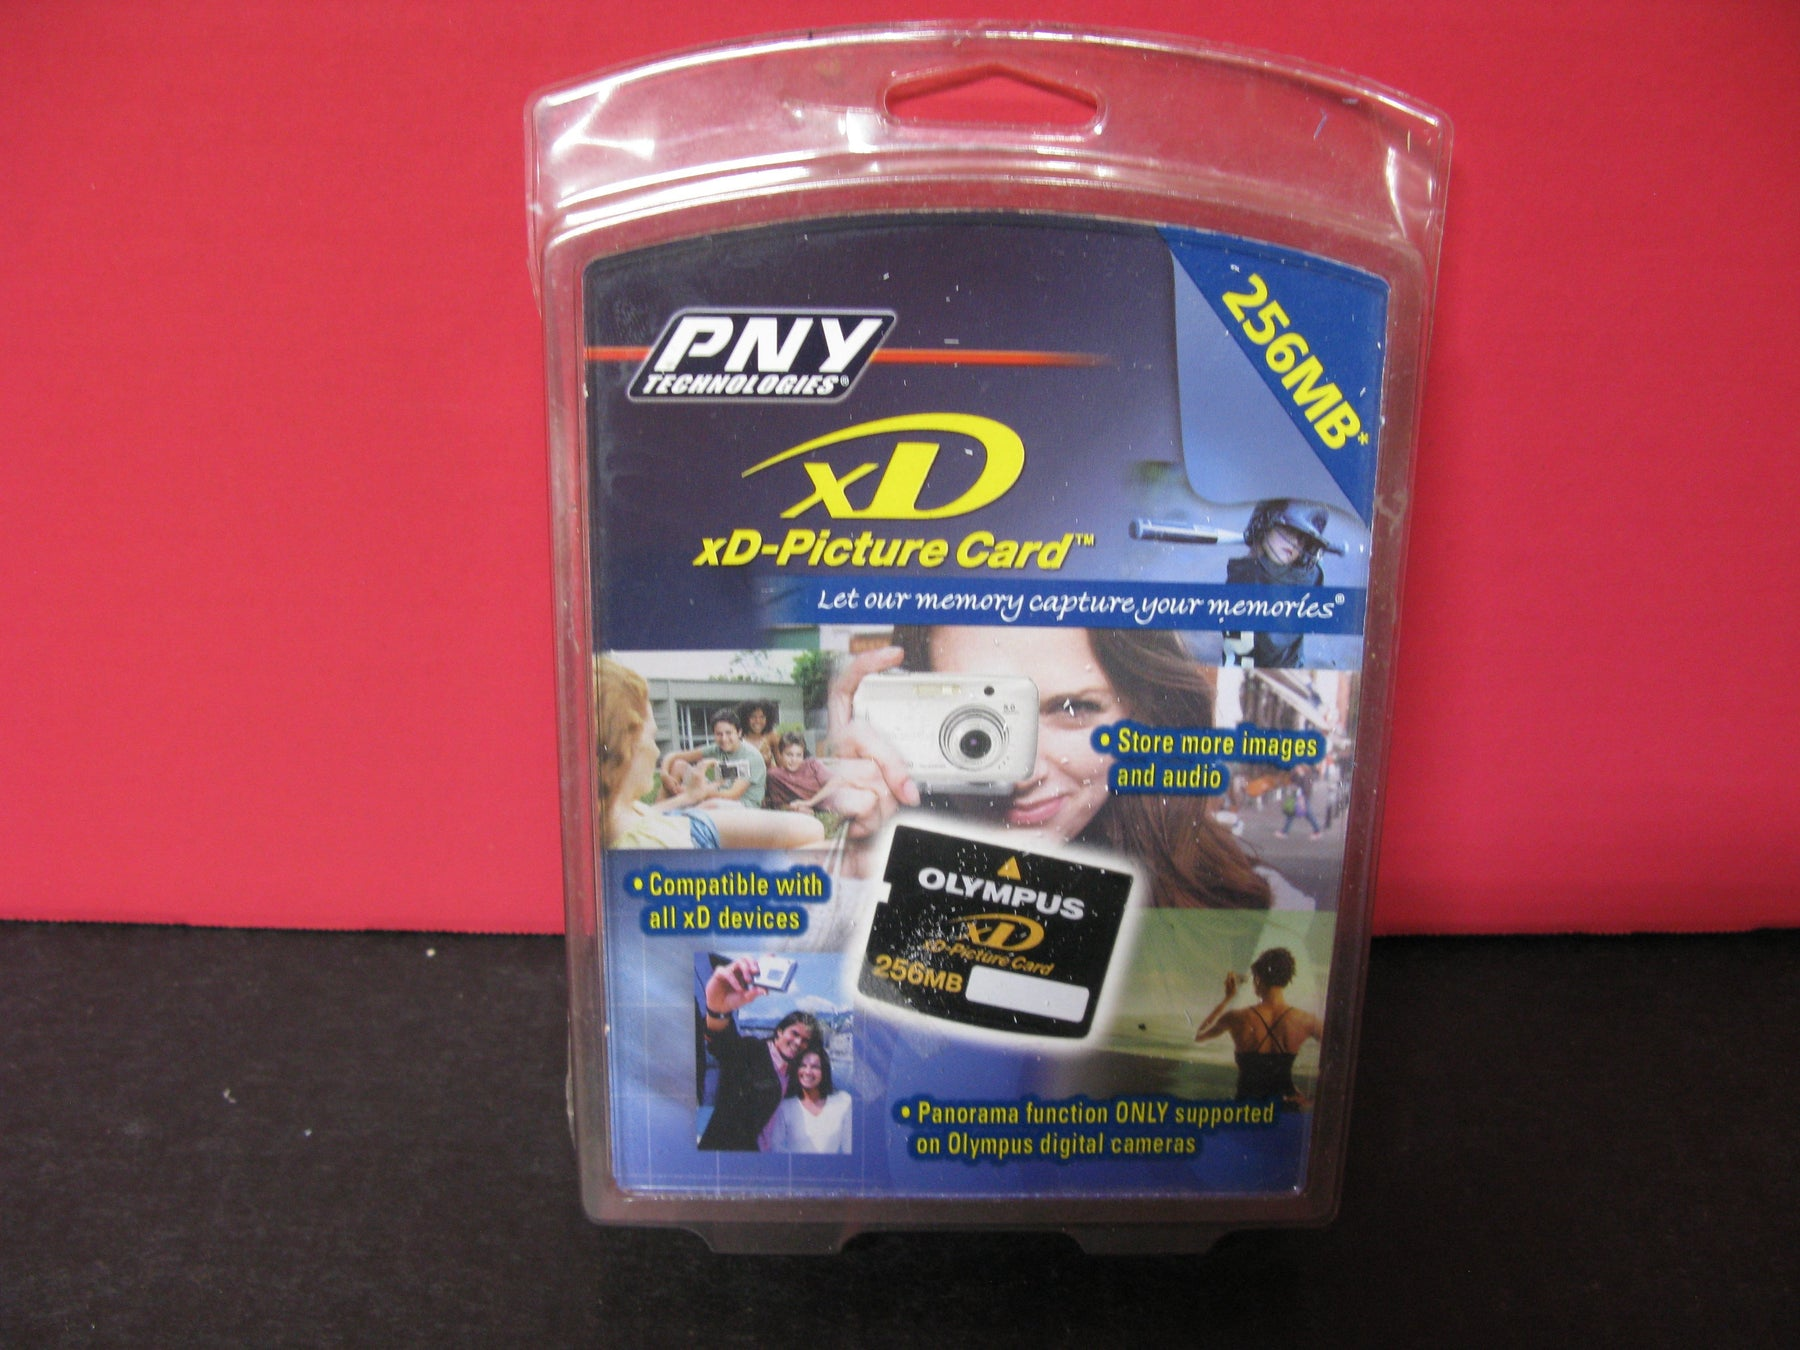 PNY Technologies xD-Picture Card